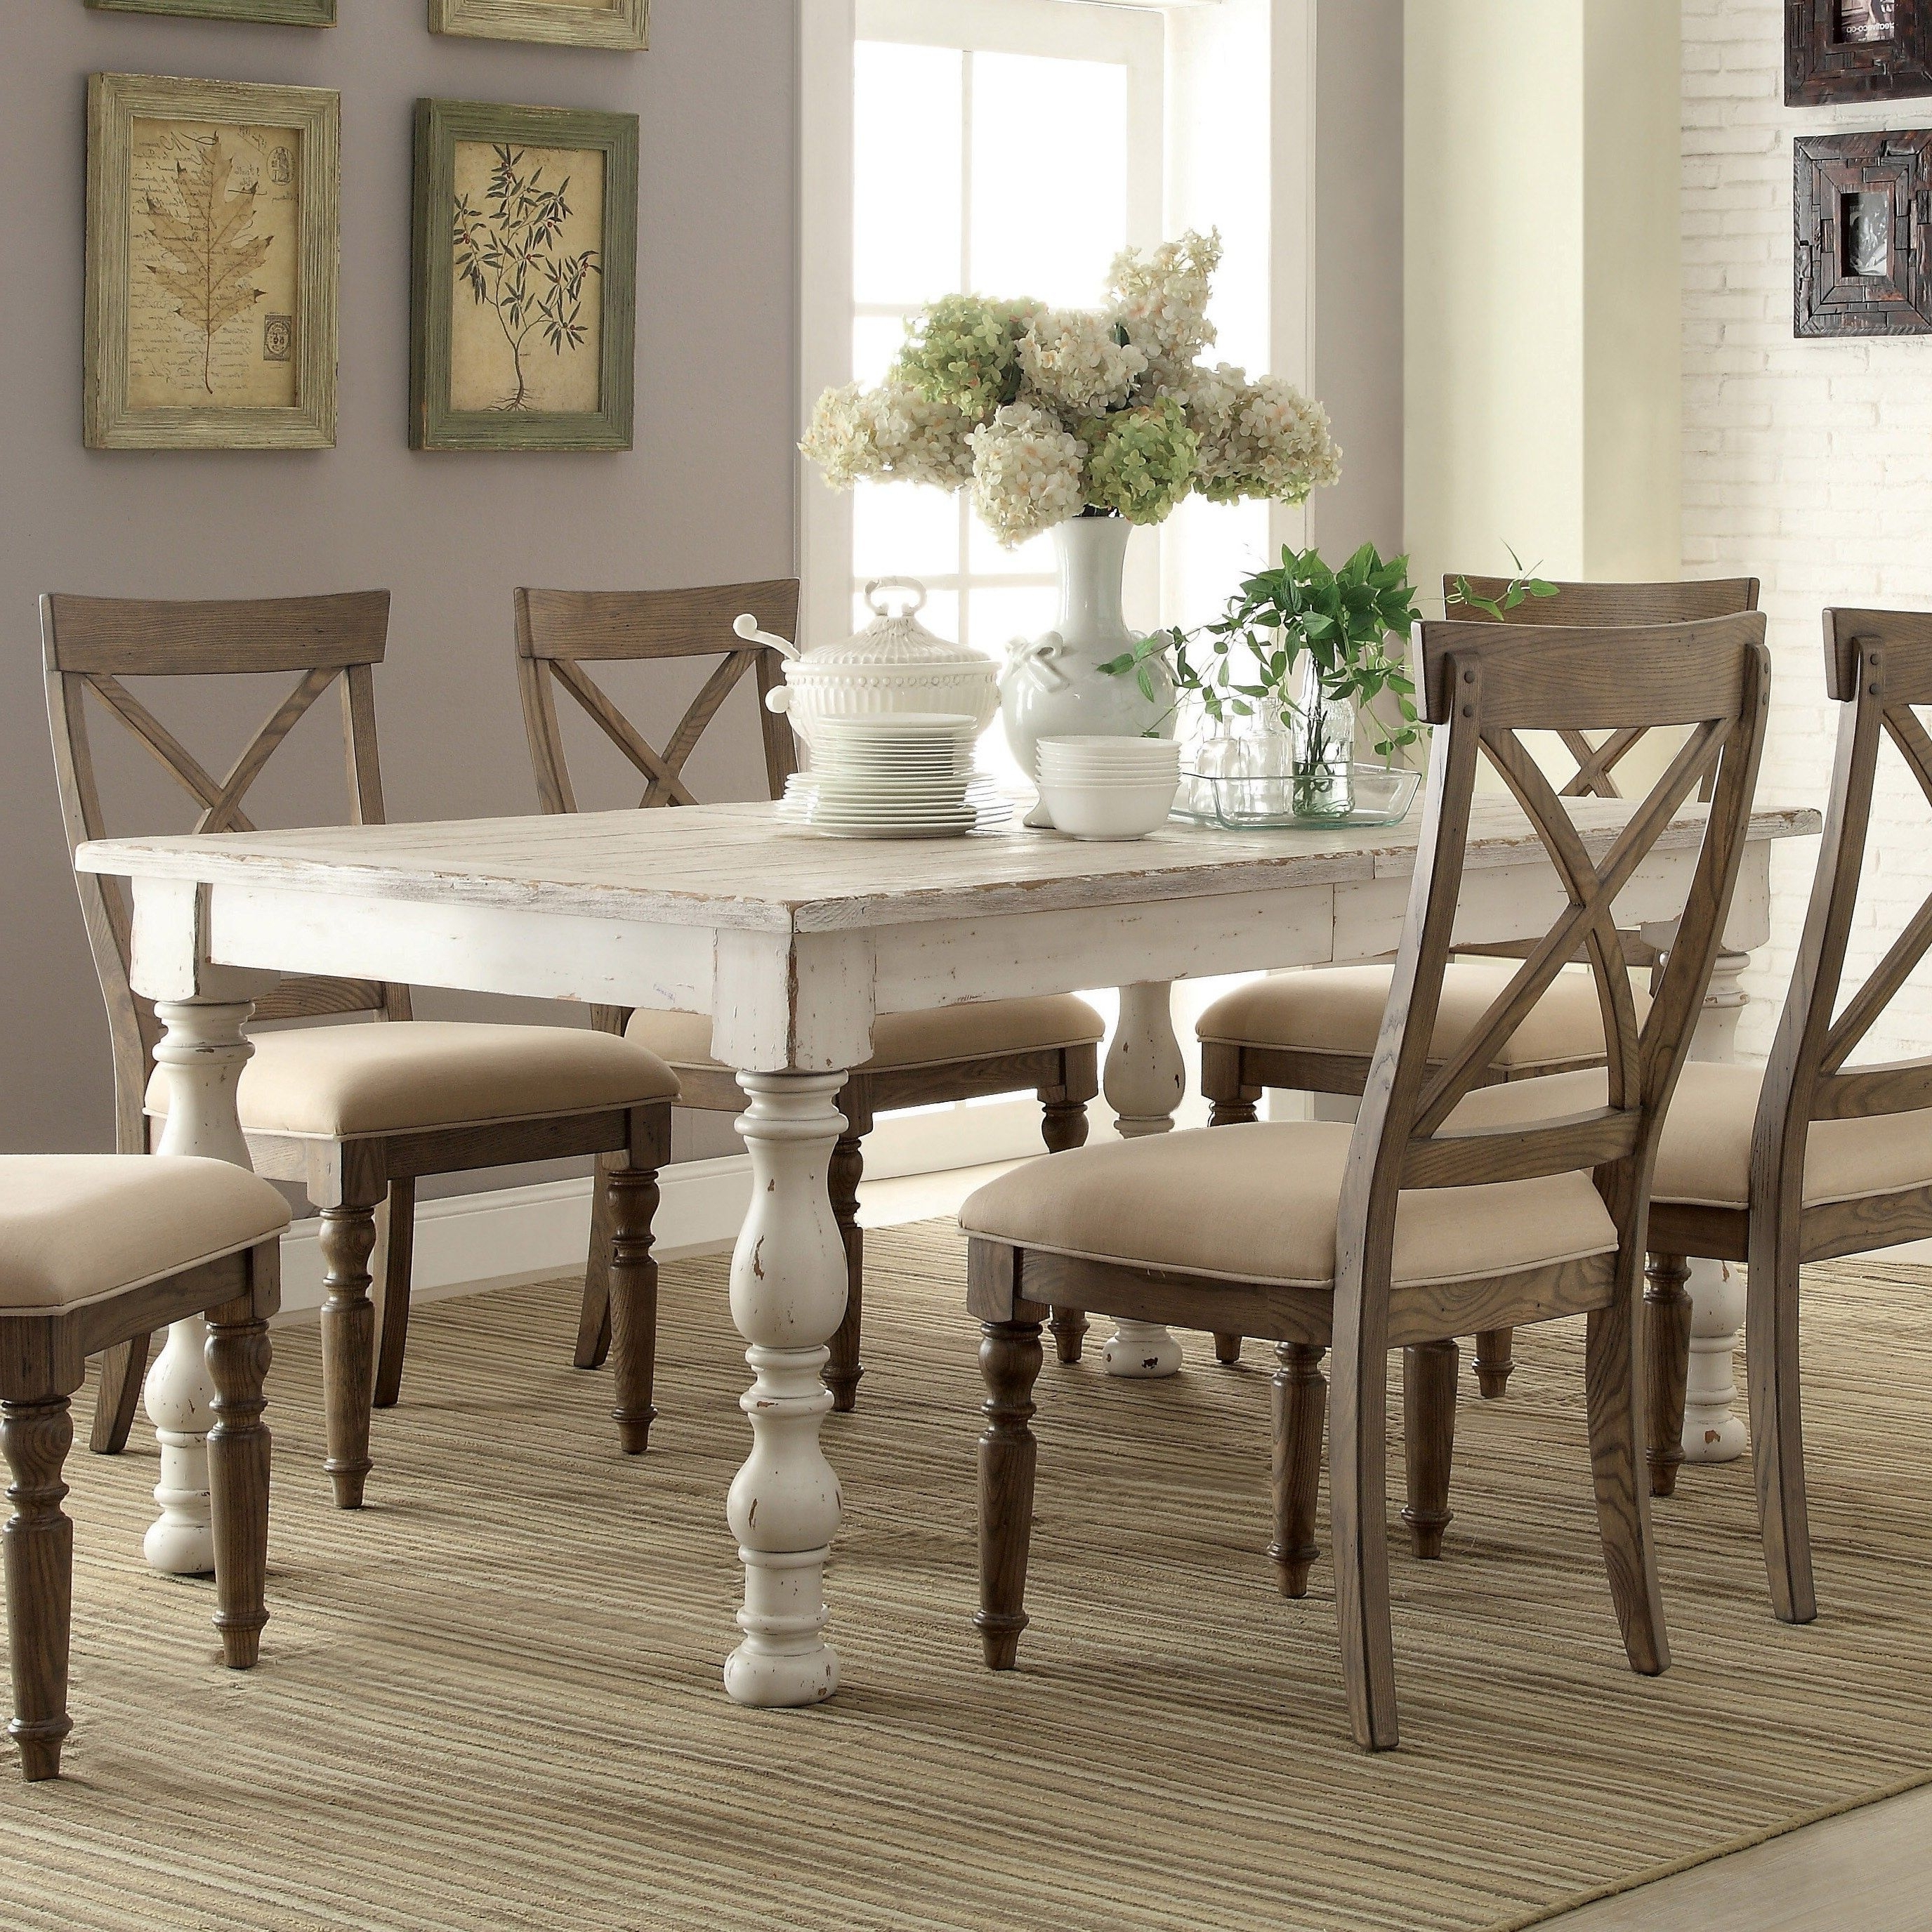 Aberdeen Wood Rectangular Dining Table Only In Weathered Worn White Throughout Most Recent Laurent 7 Piece Rectangle Dining Sets With Wood And Host Chairs (View 14 of 25)